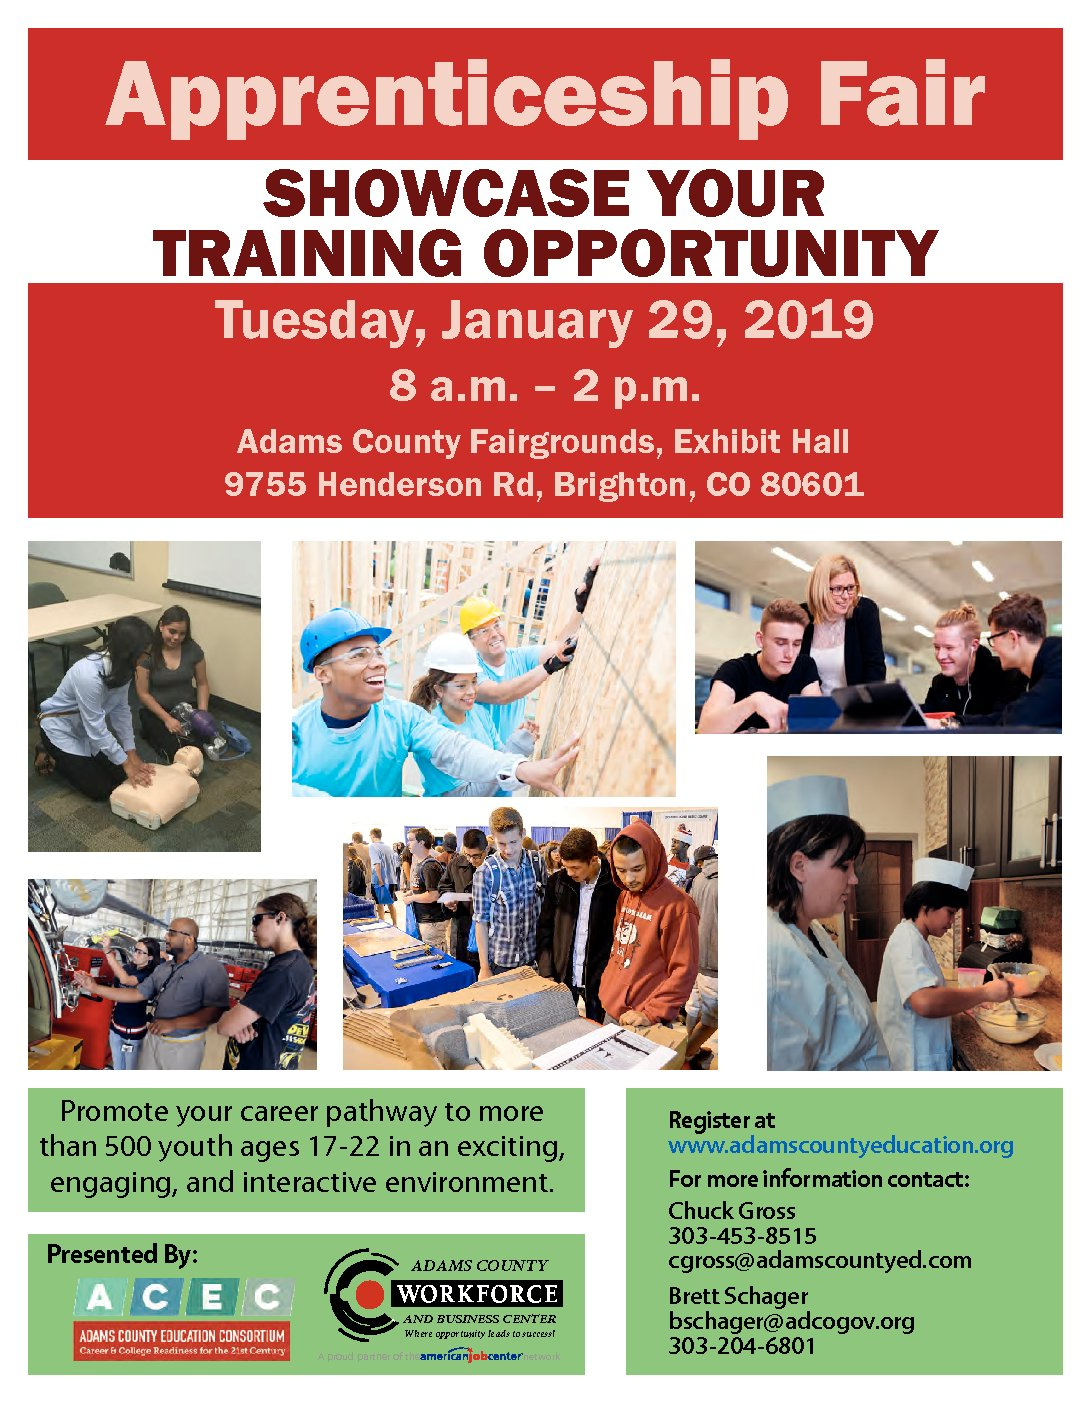 Tuesday, January 29, 2019 Apprenticeship Fair Showcase Your Training Opportunity